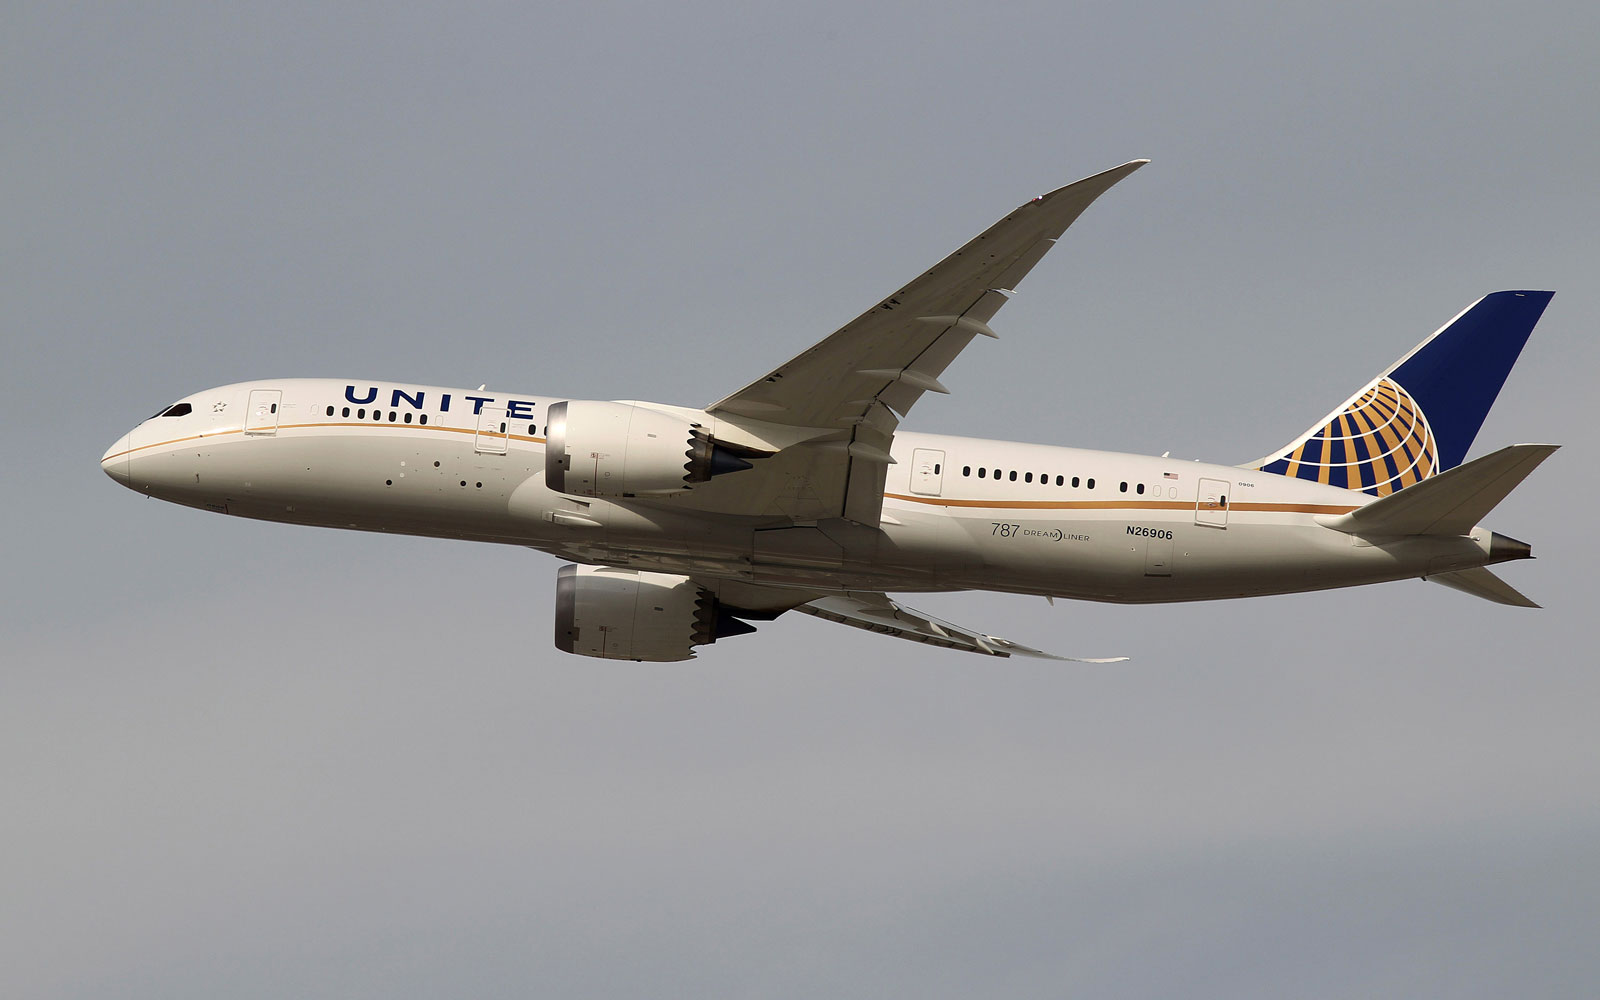 19-year-old earned 1 million miles by hacking United Airlines